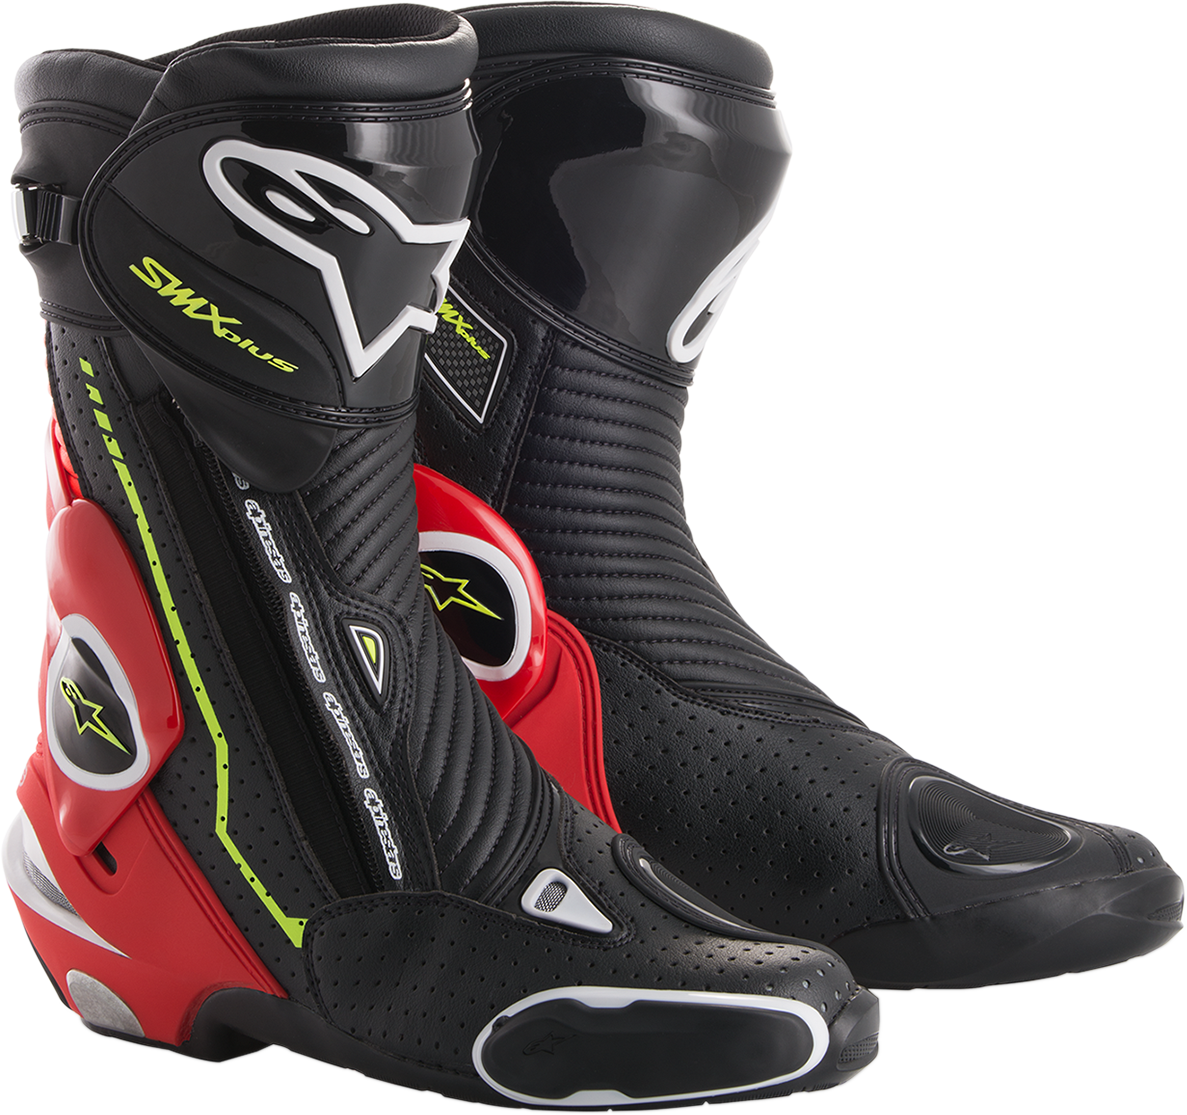 Alpinestars Mens SMX Plus Black Red White Yellow Motorcycle Riding Street Boots